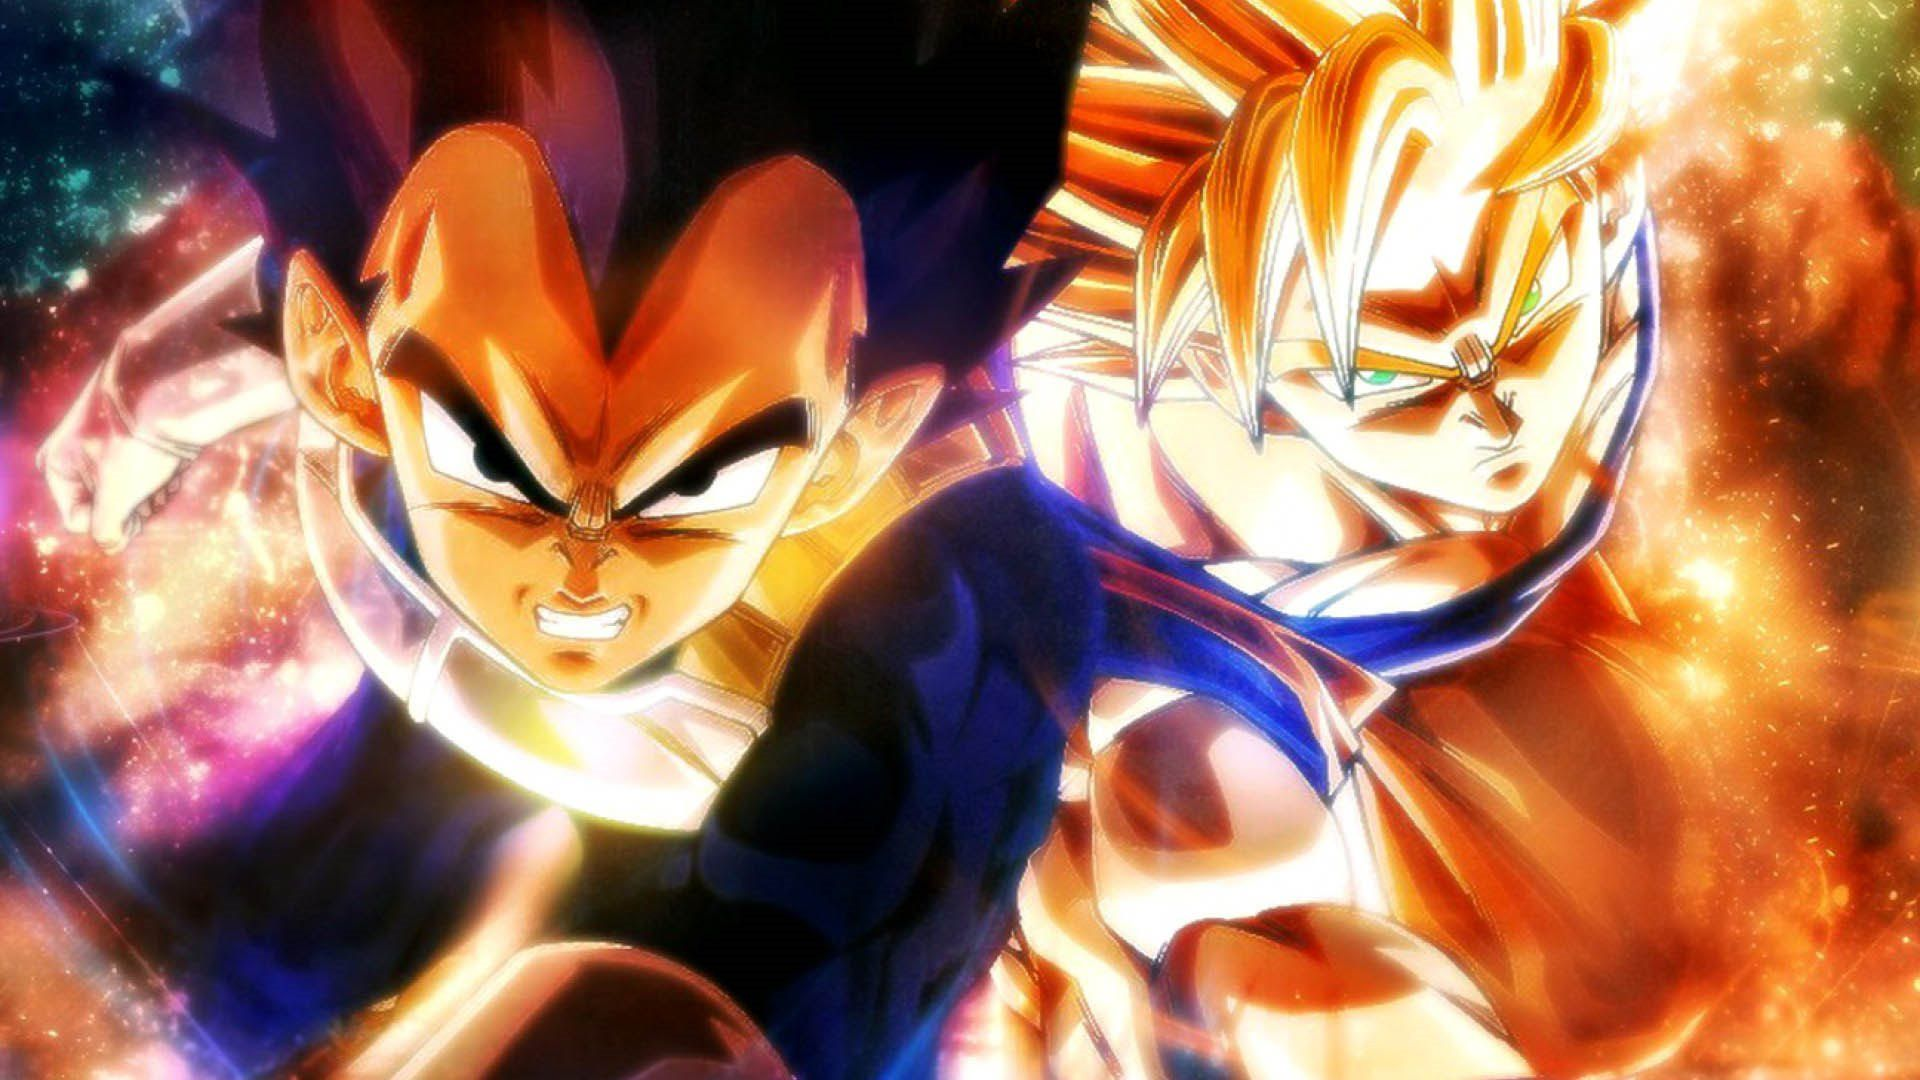 Vegeta And Goku Desktop Wallpapers Wallpaper Cave